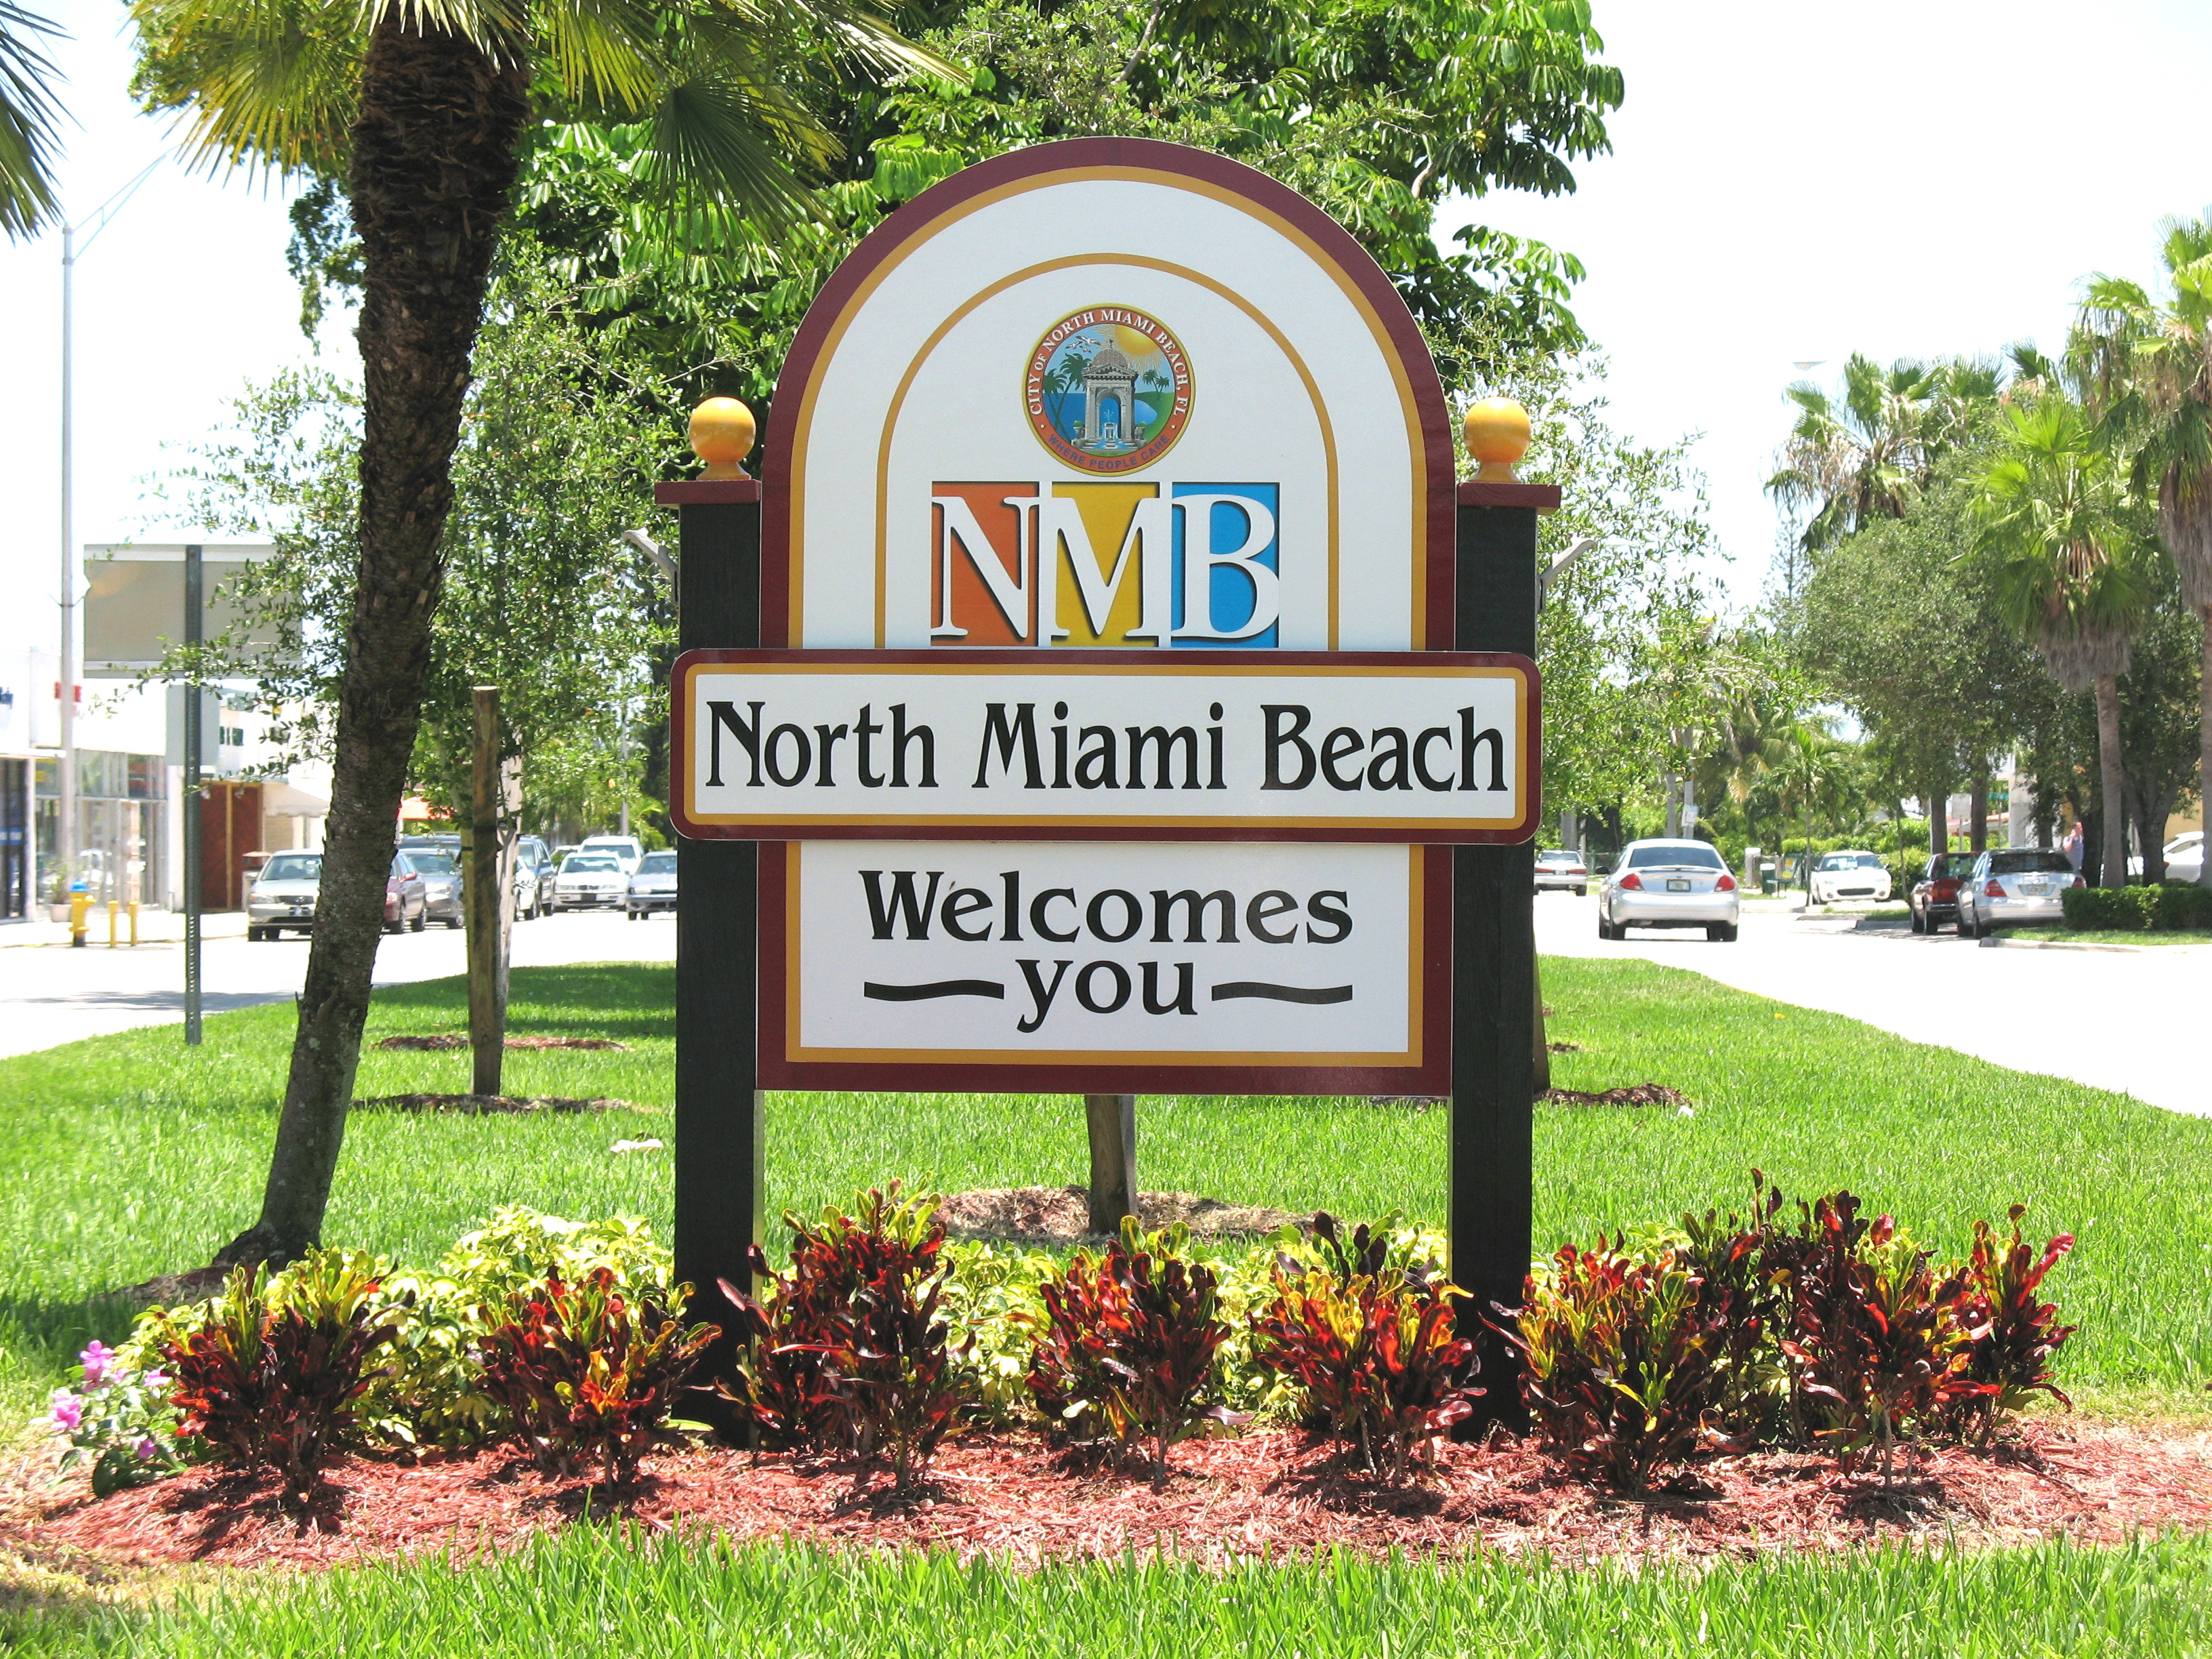 north miami beach Book now for our 100% lowest price guarantee on over 1453 north miami beach hotels find the top hotels with no cancelation fees at travelocity today.